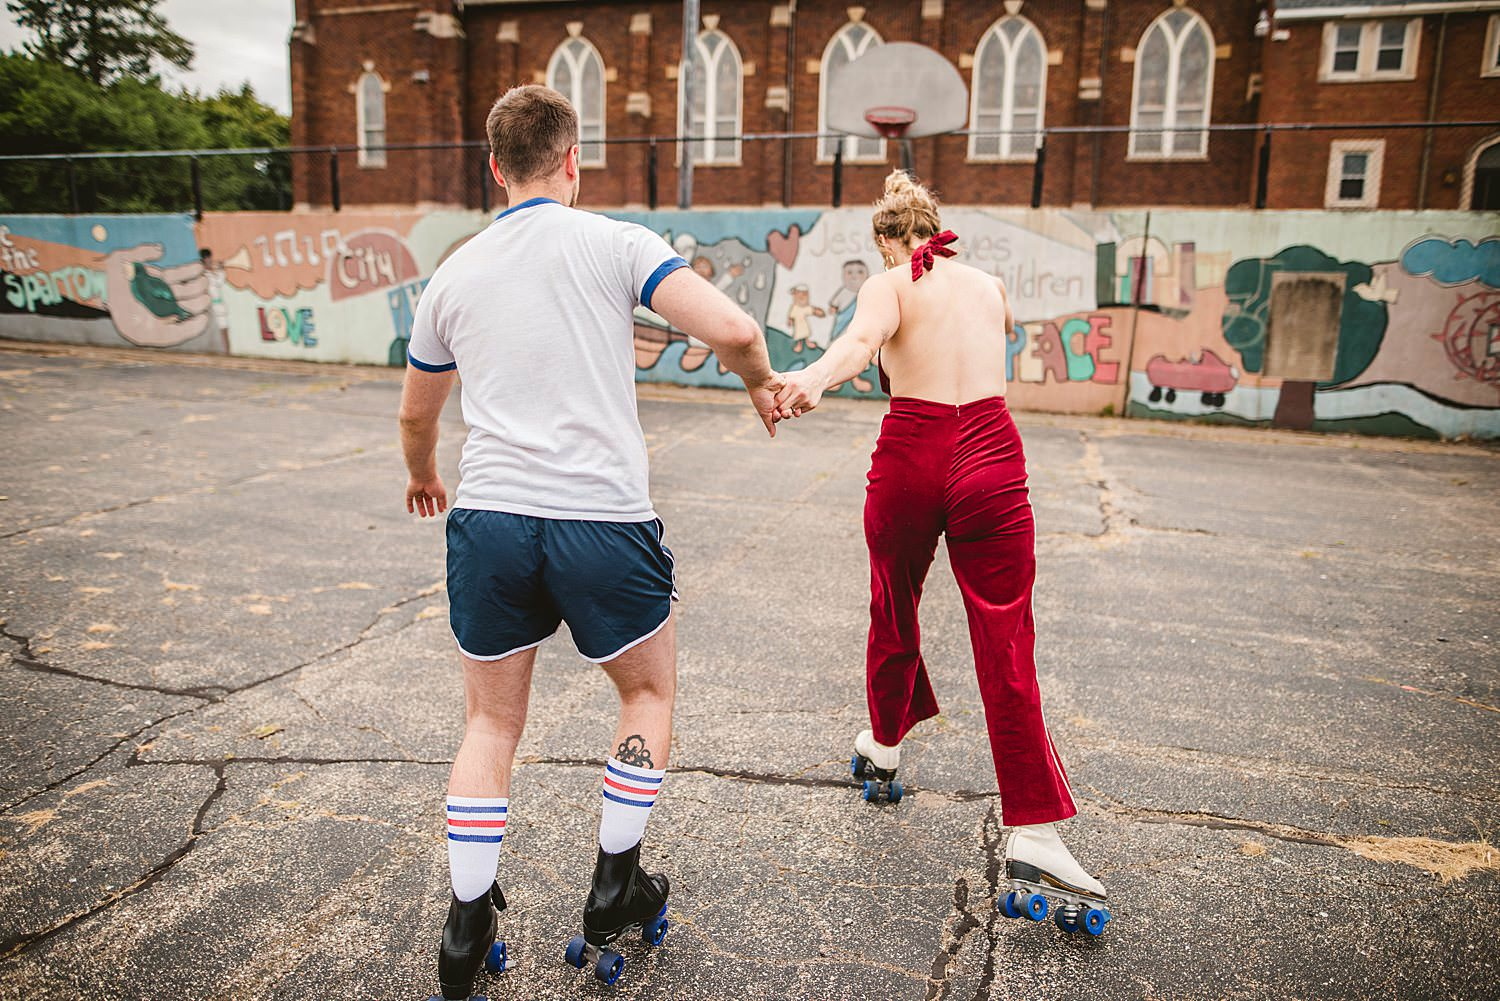 1970s themed roller skate shoot in Grand Rapids Michigan 10.jpg